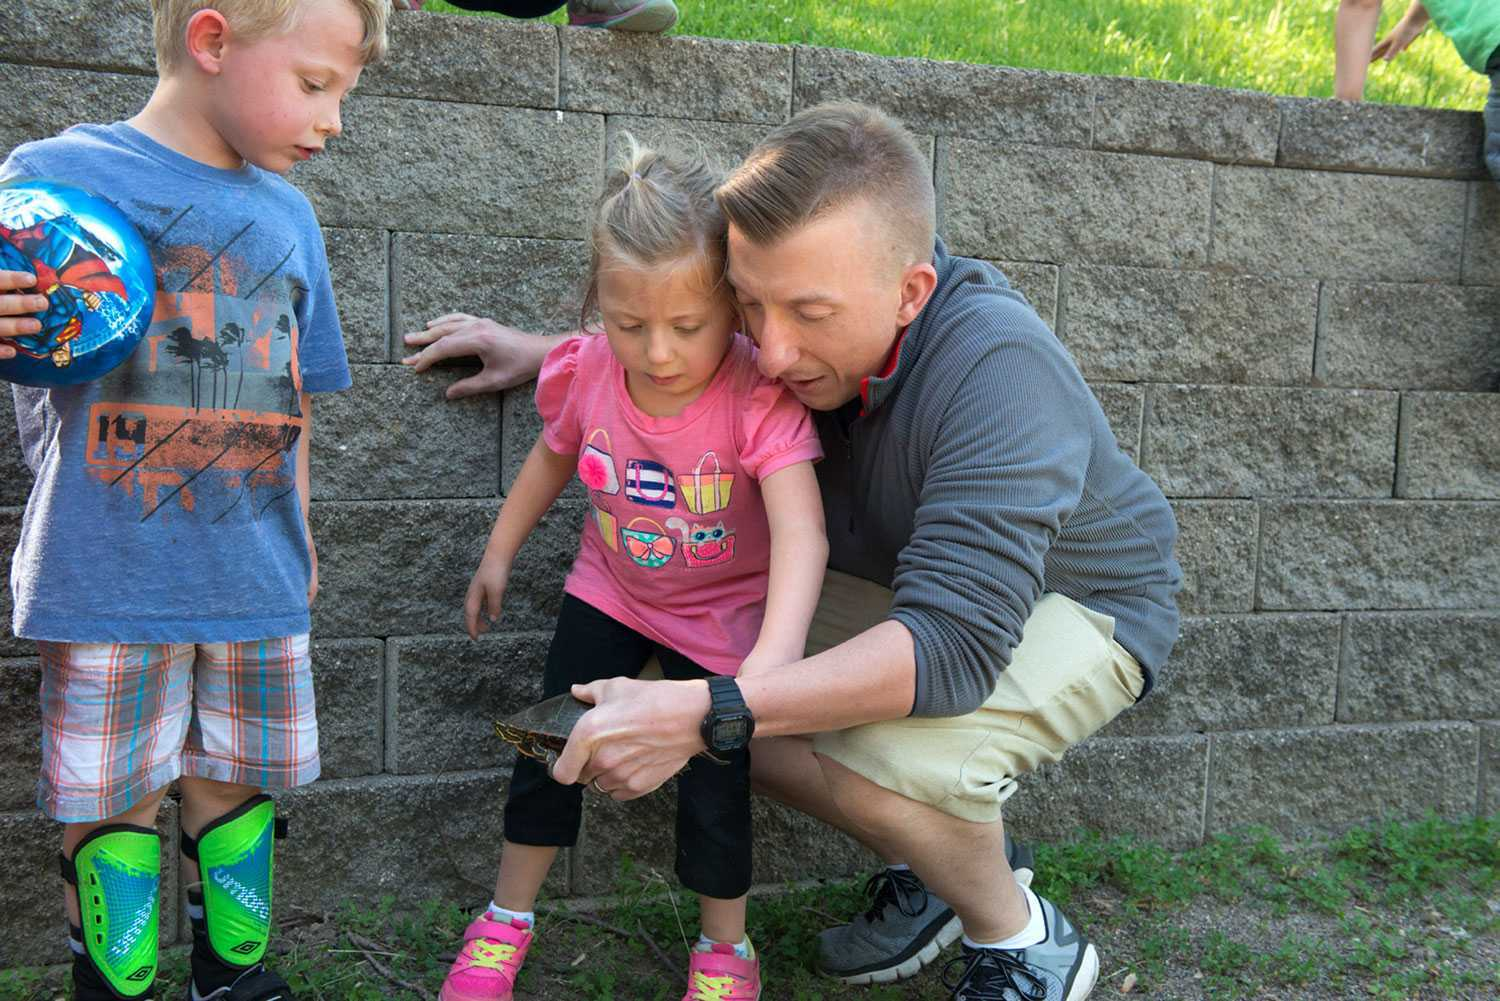 Hope, her brother Noah, and Kevin take a closer look at a turtle they discovered in a neighborhood park.